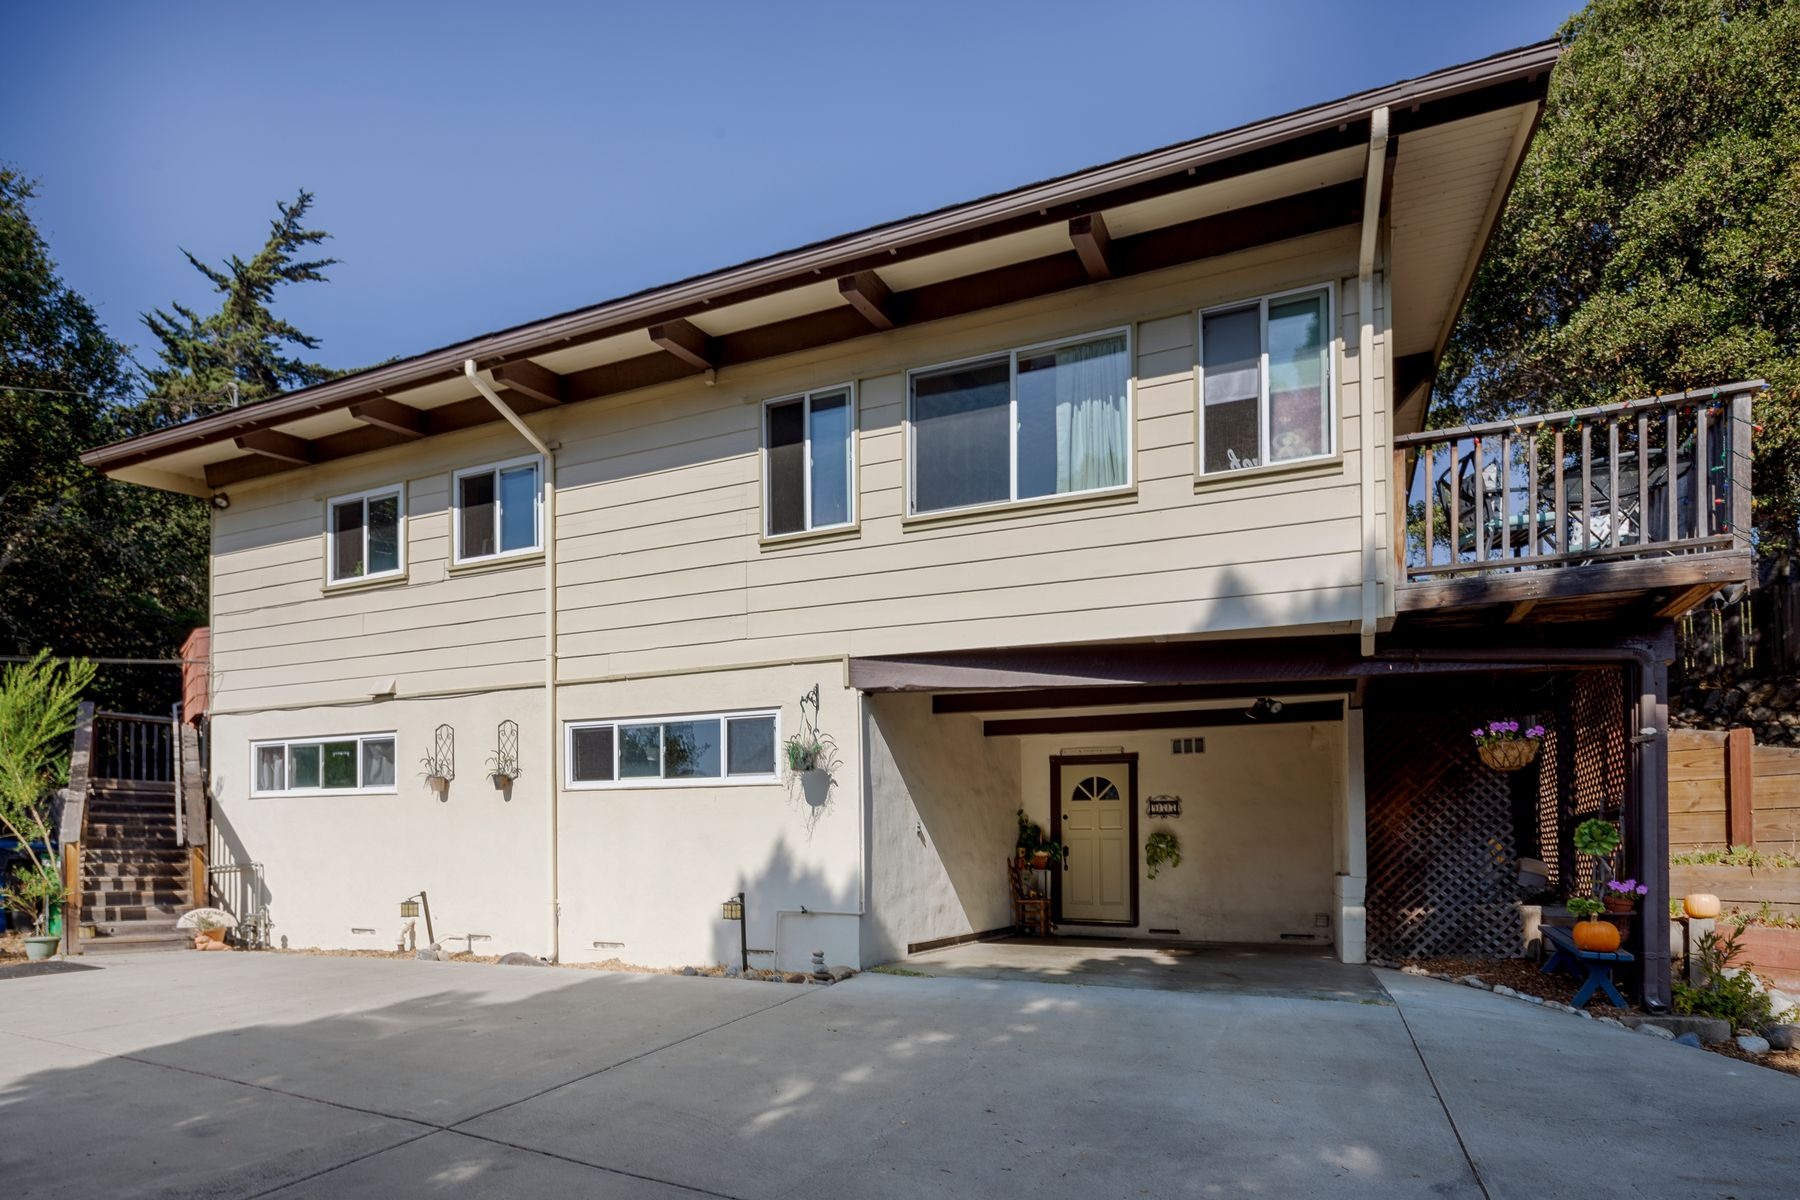 Single Family Homes for Sale at A True Del Rey Oaks Gem 977 Angelus Way Del Rey Oaks, California 93940 United States